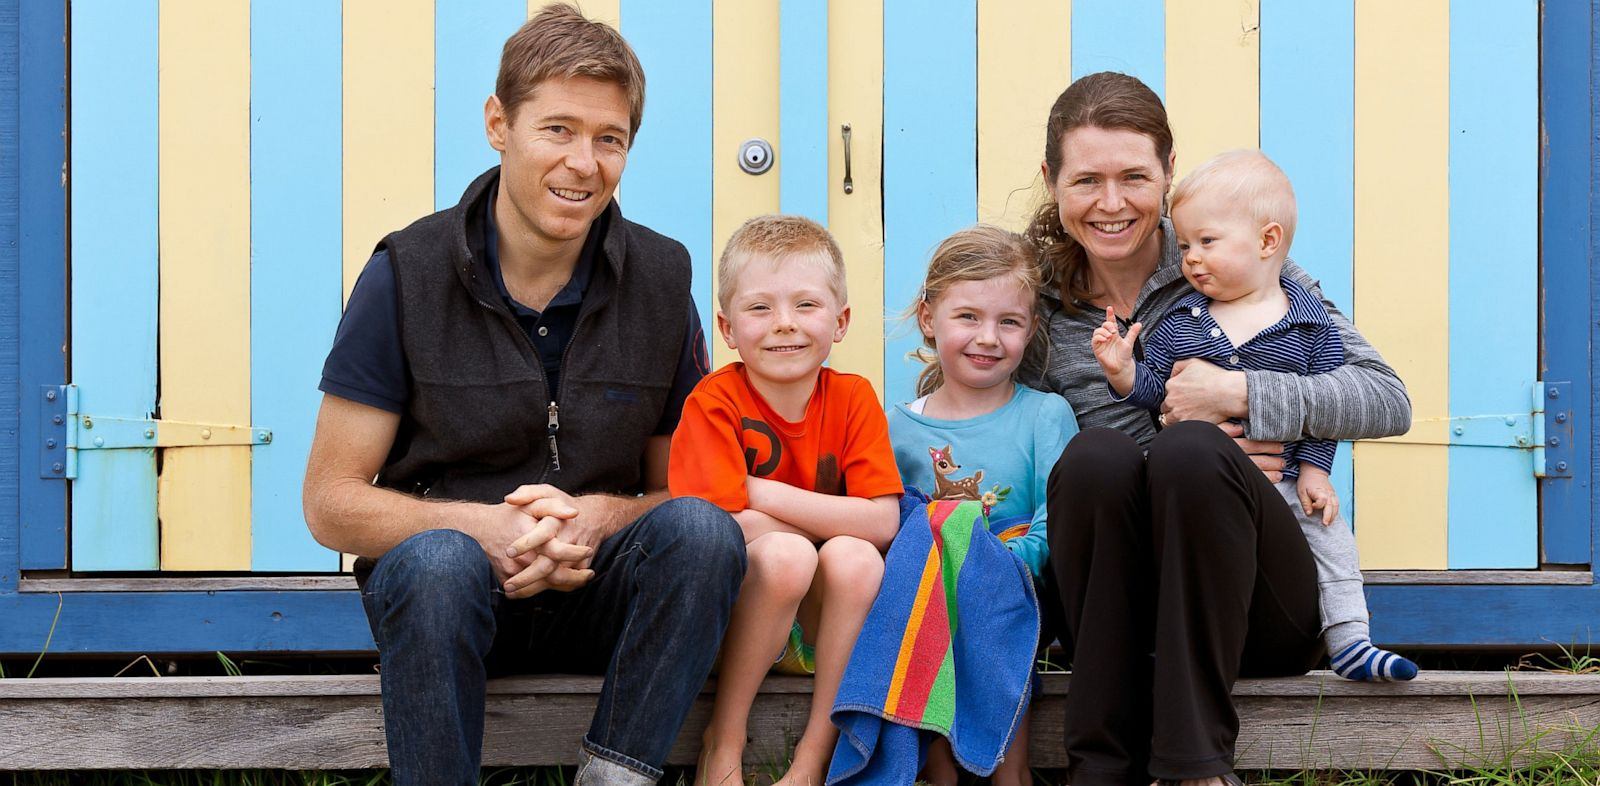 PHOTO: Nick and Amy Auden with their children, Locky, 7, Hayley, 5, and Evan, 1.